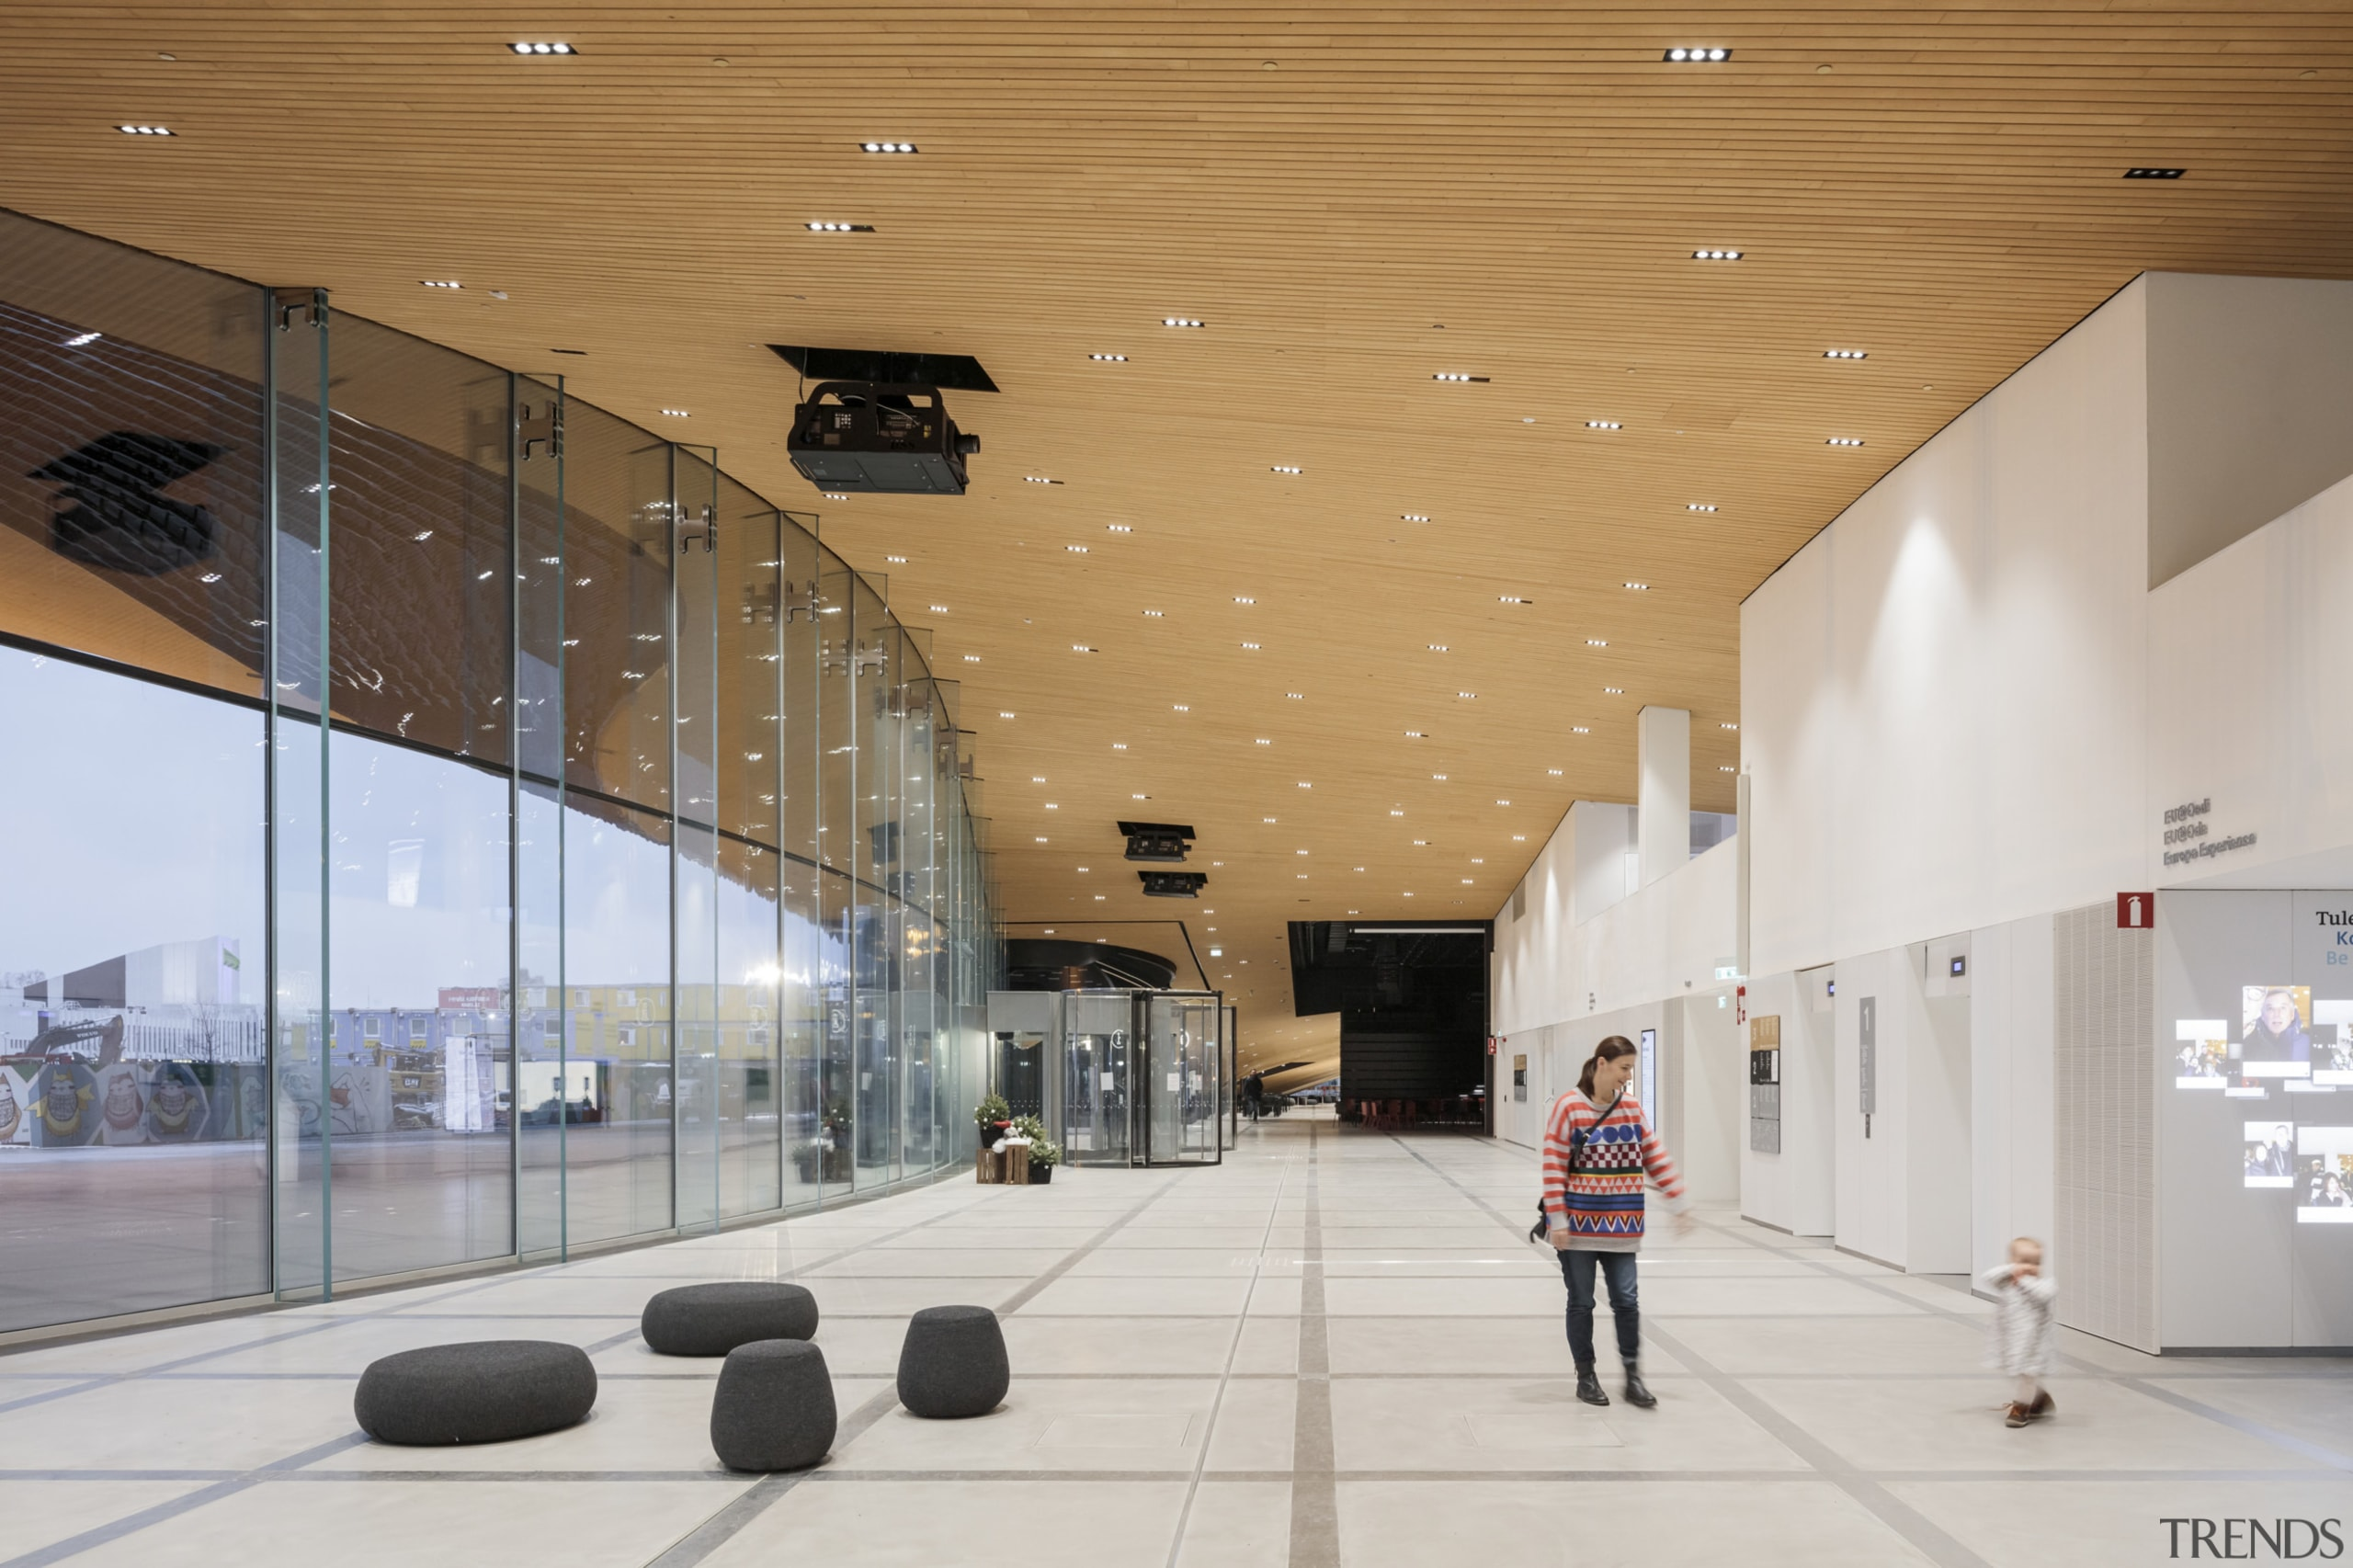 The Helsinki library by ALA Architects engages with architecture, building, ceiling, design, interior design, lobby, shopping mall, gray